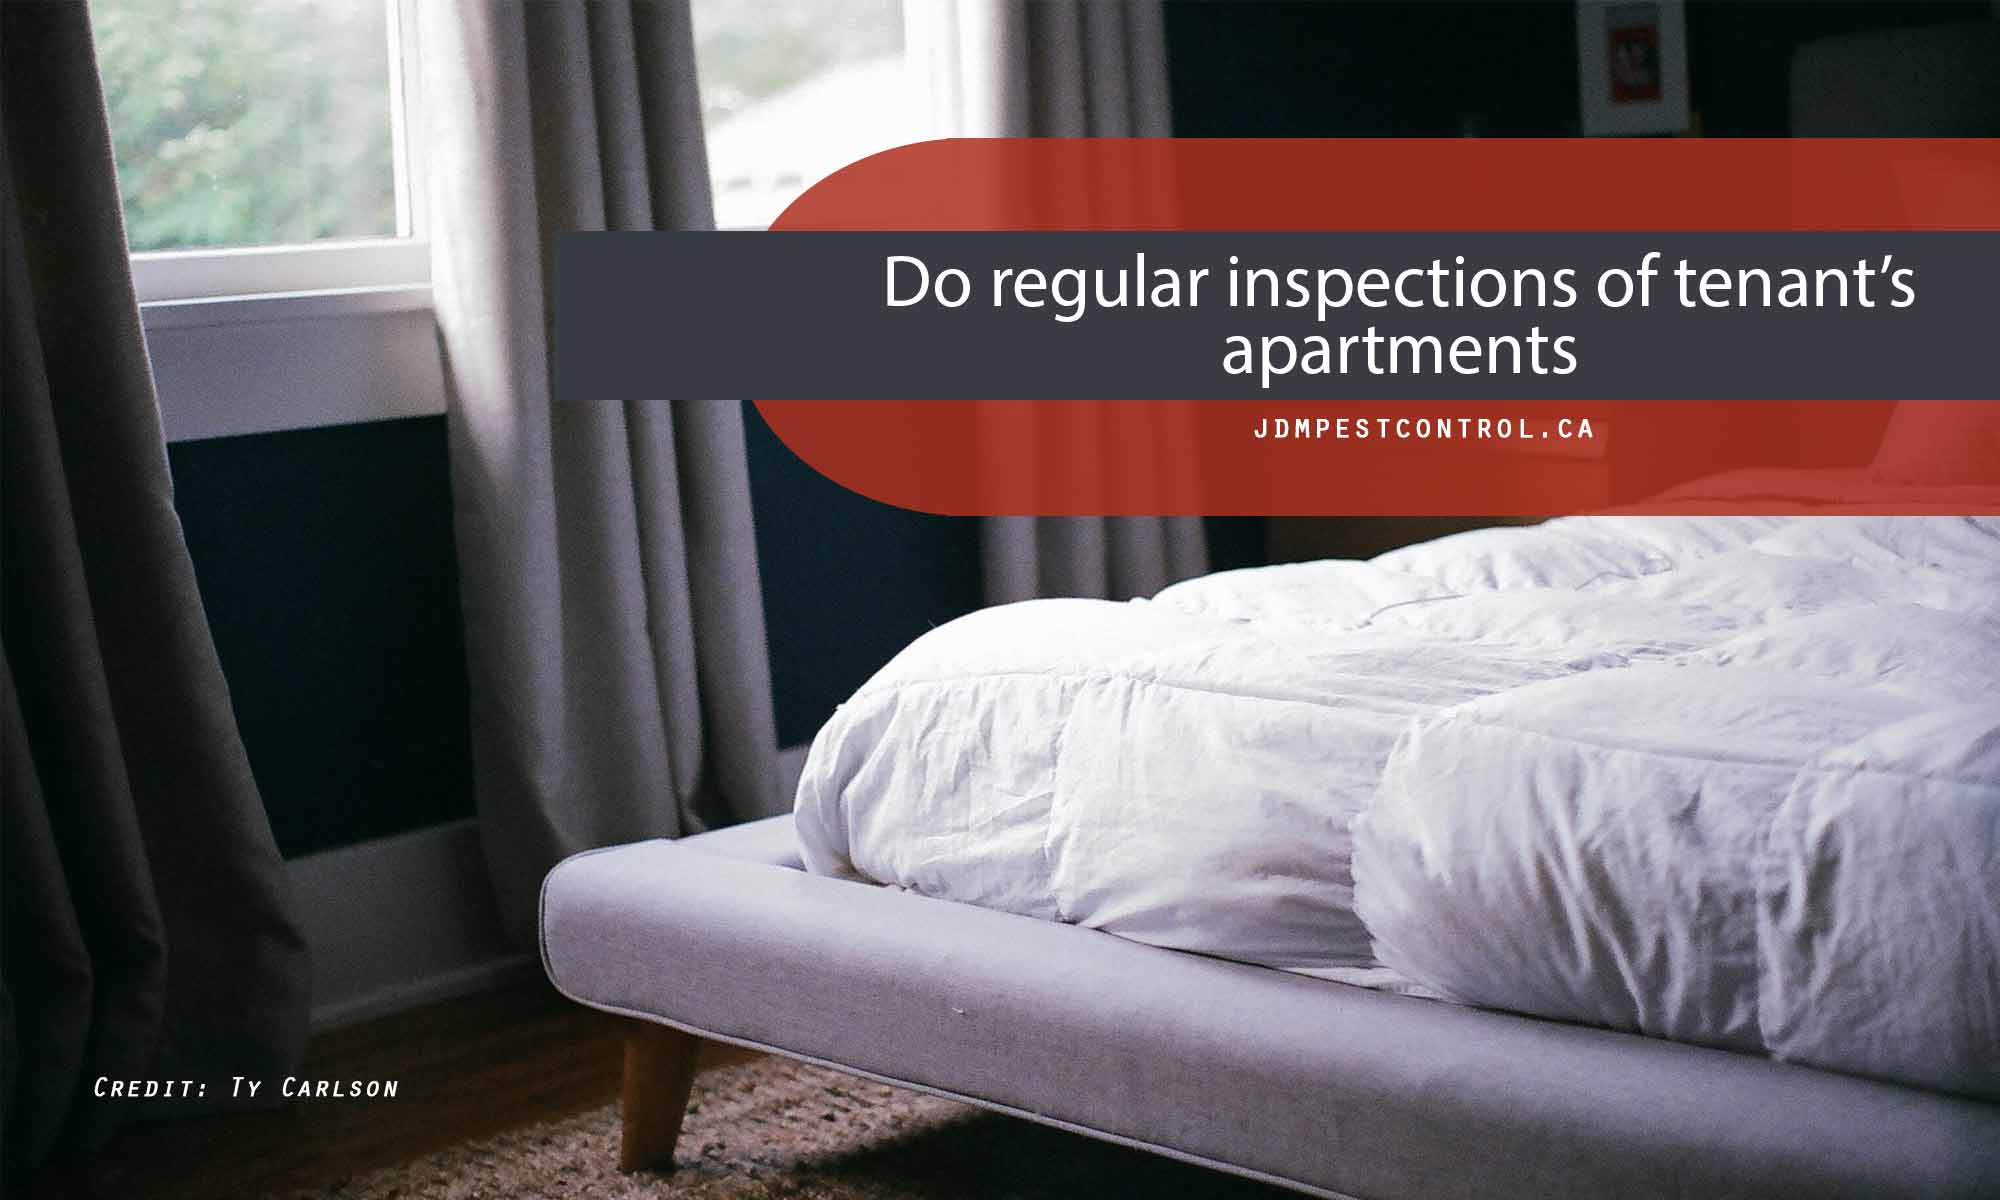 Do regular inspections of tenant's apartments.